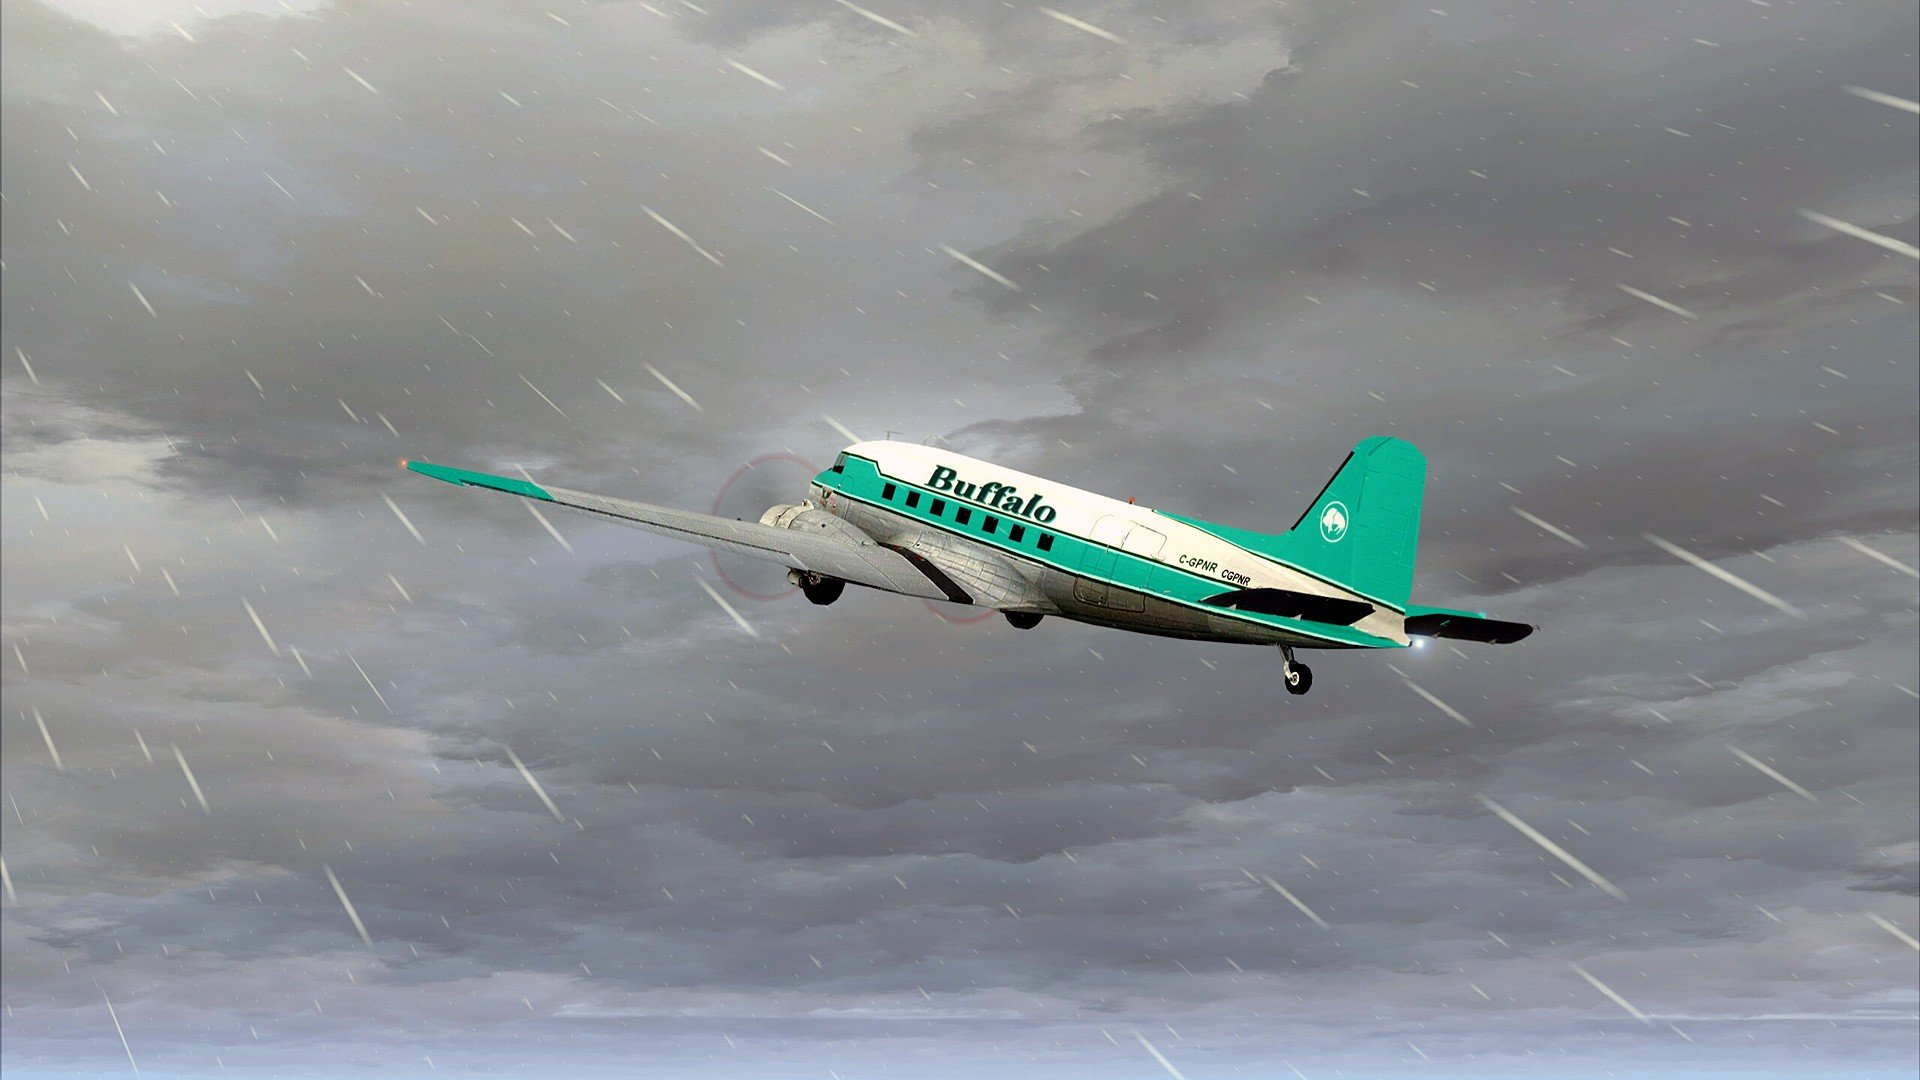 Warbird dc 3 photoshop ice pilots nwt buffalo airways for Ice pilots spiegel tv